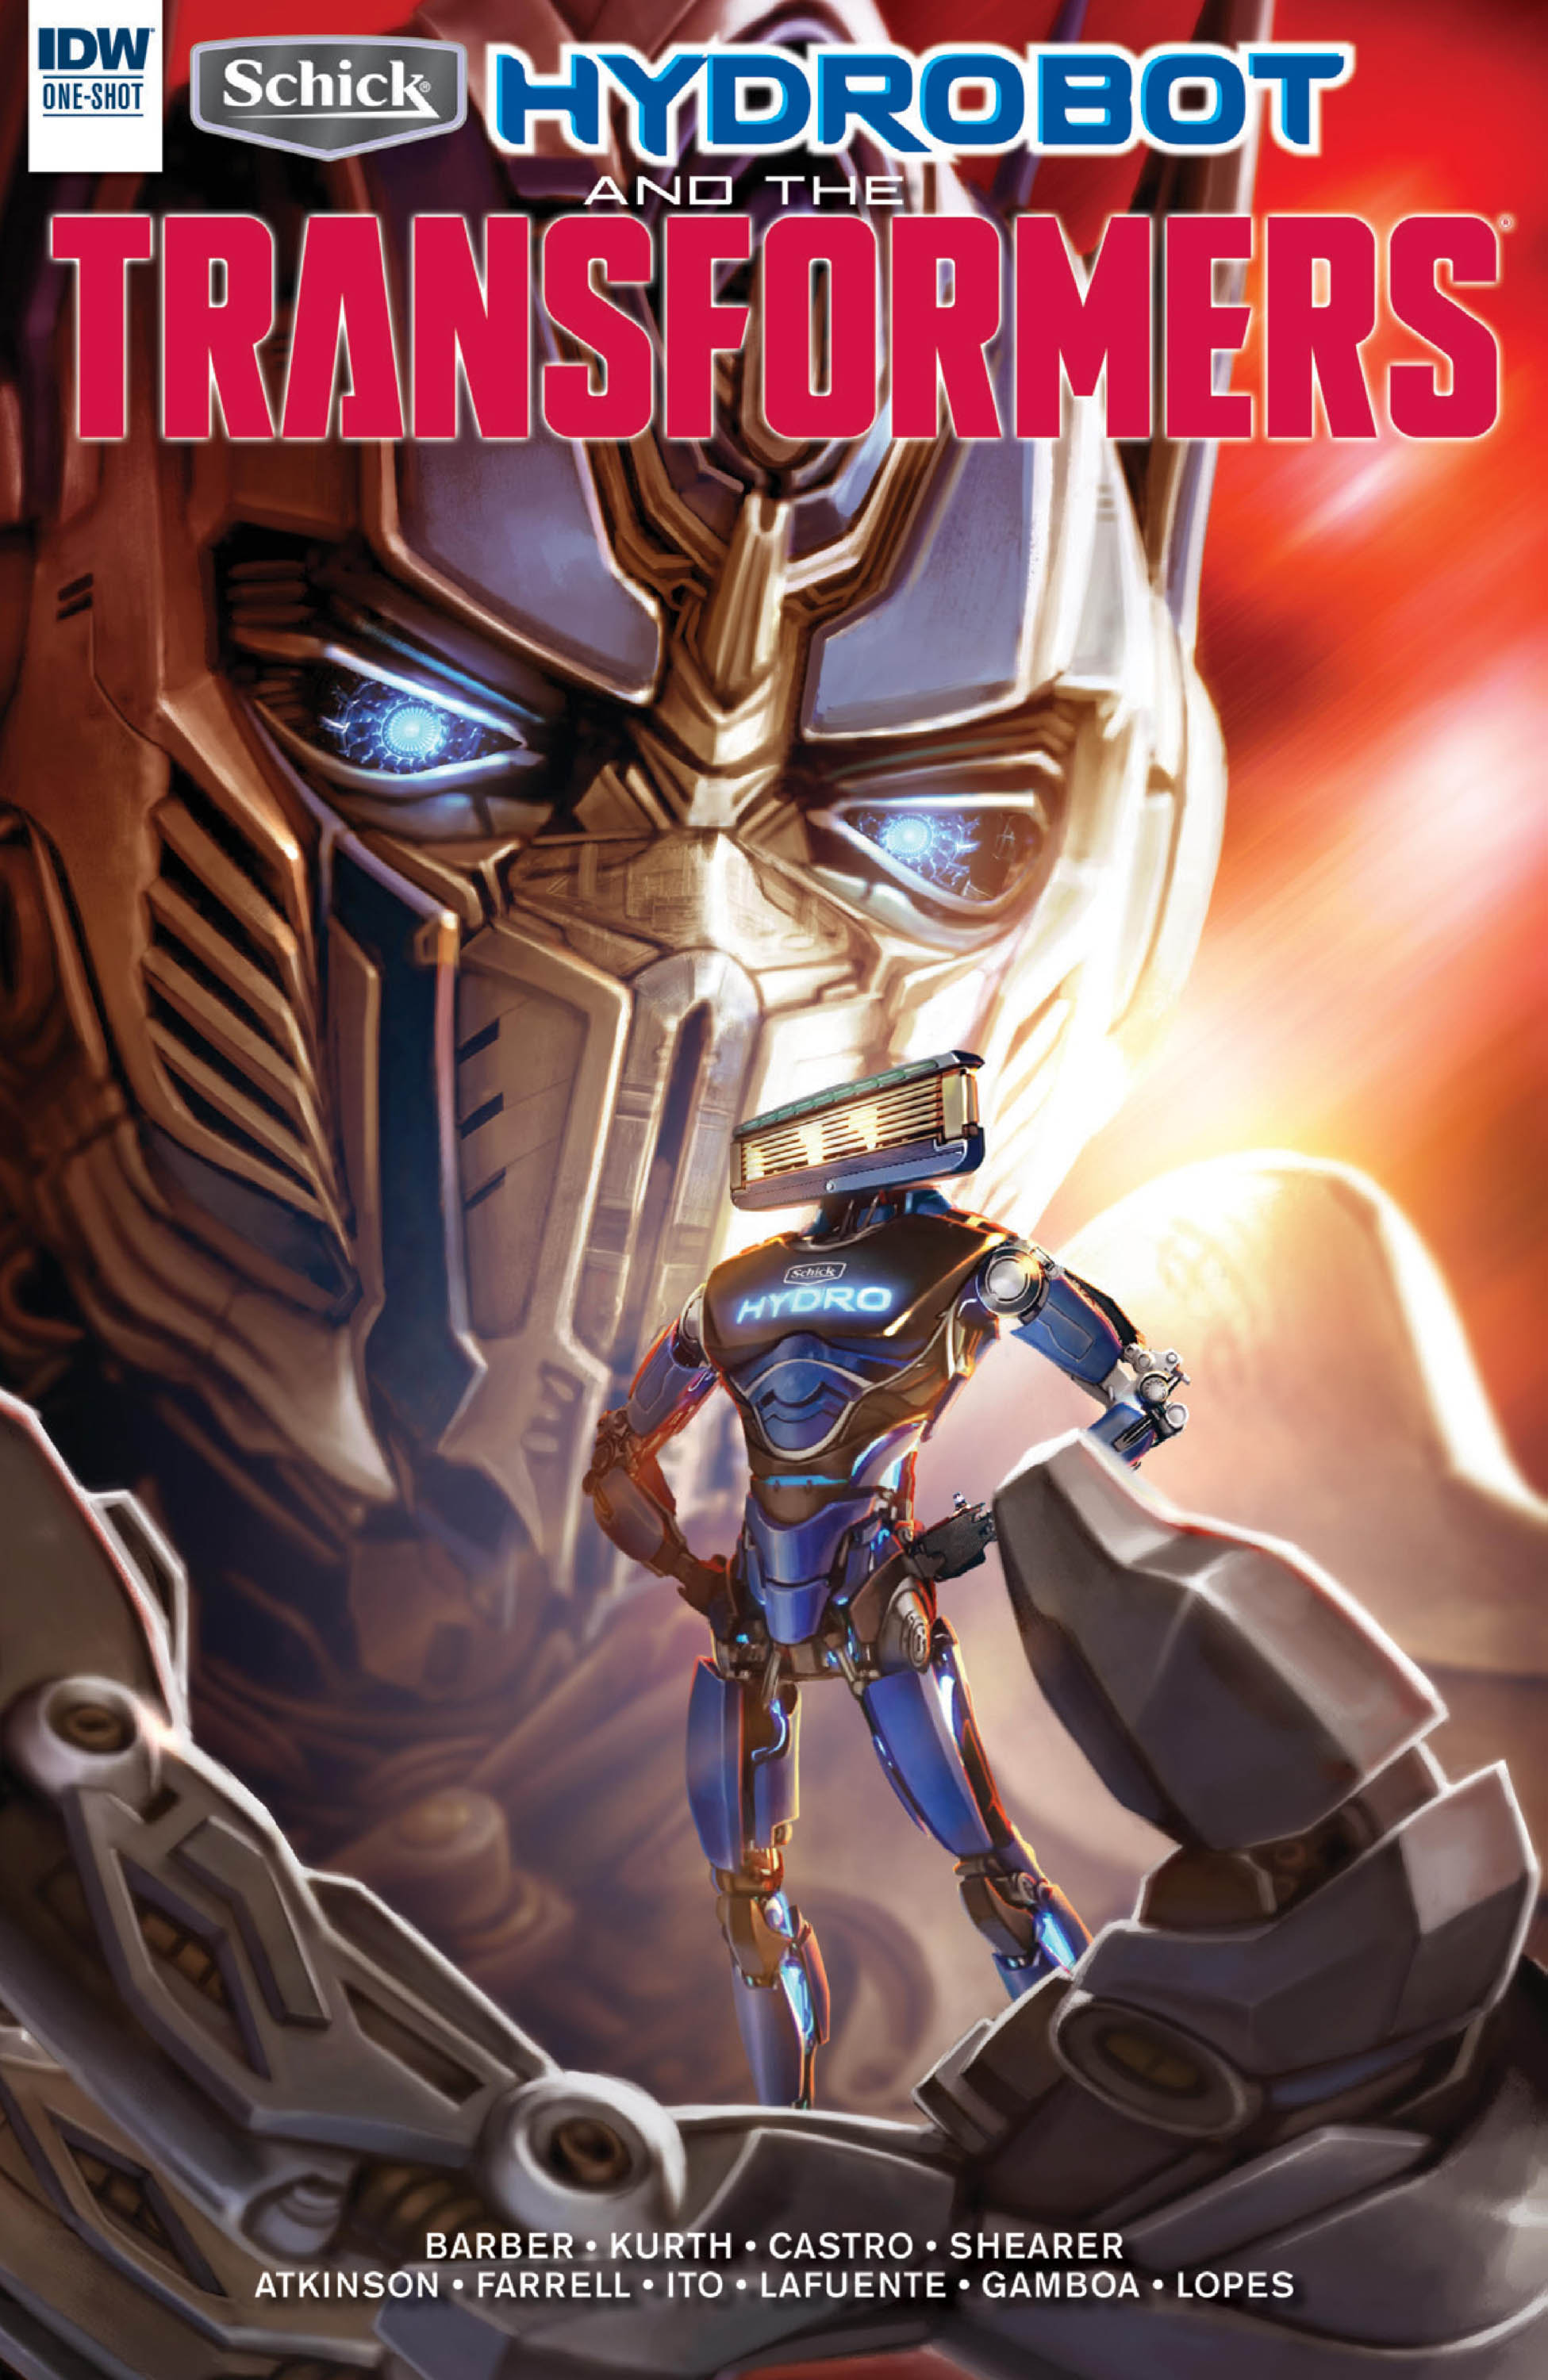 Schick Hydrobot & the Transformers: A New Friend Full Page 1